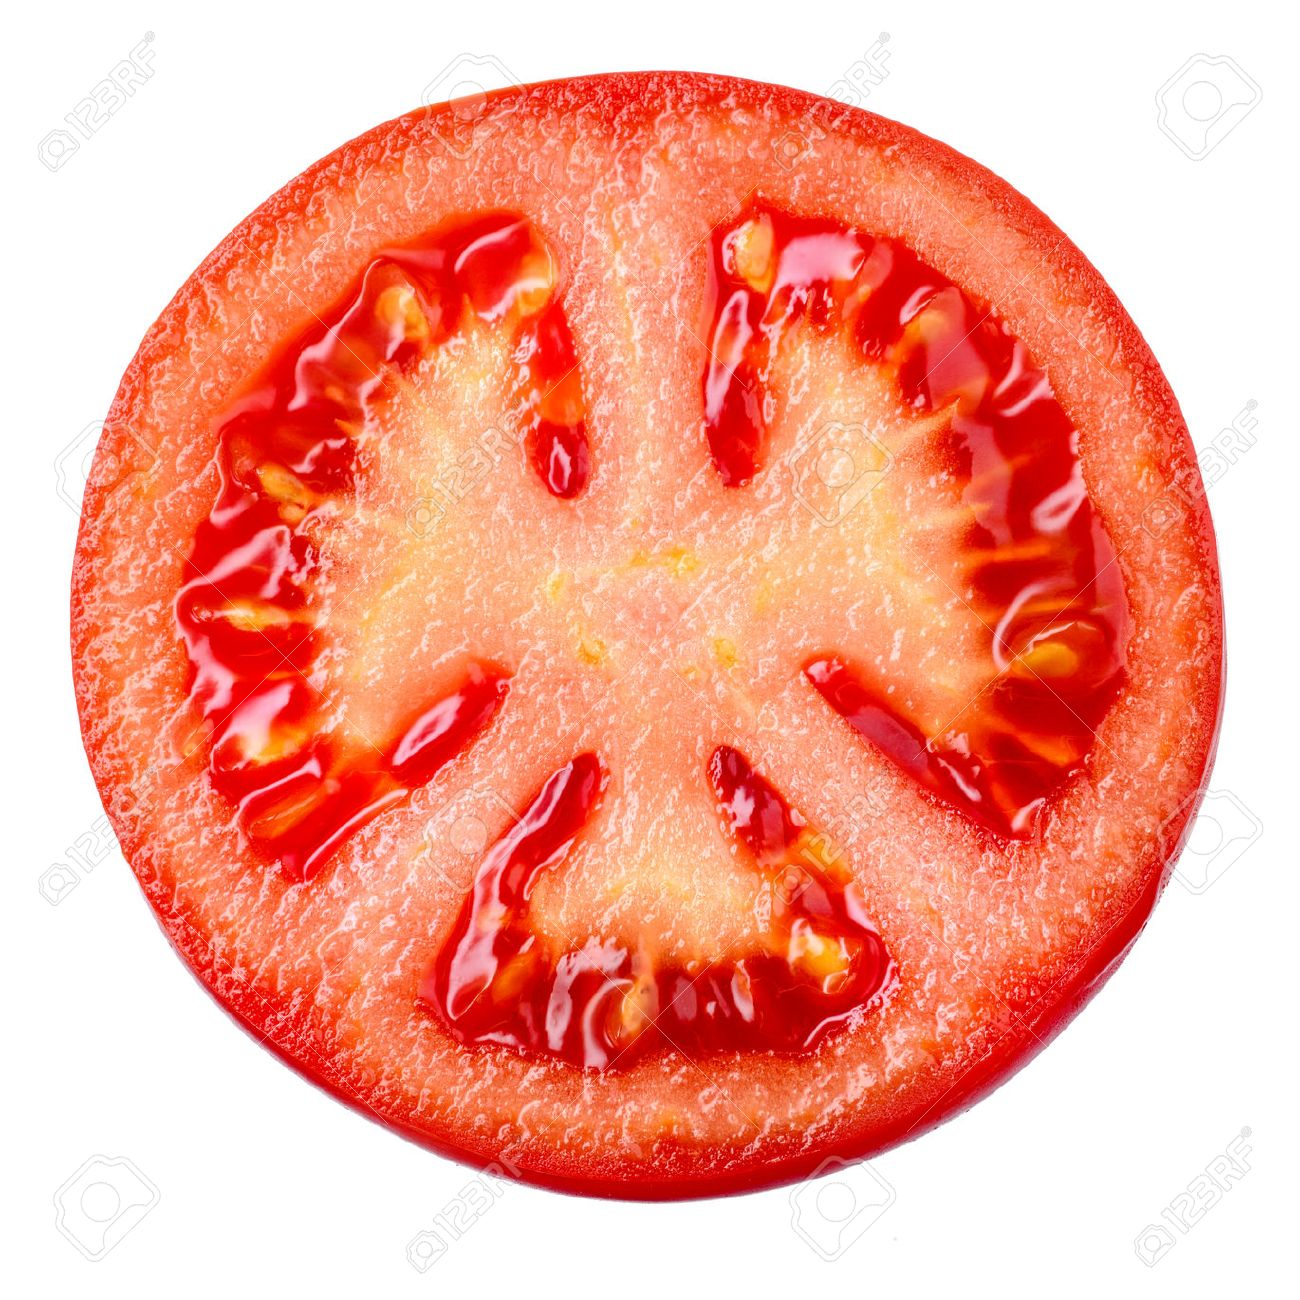 tomato slice isolated on white background top view stock photo